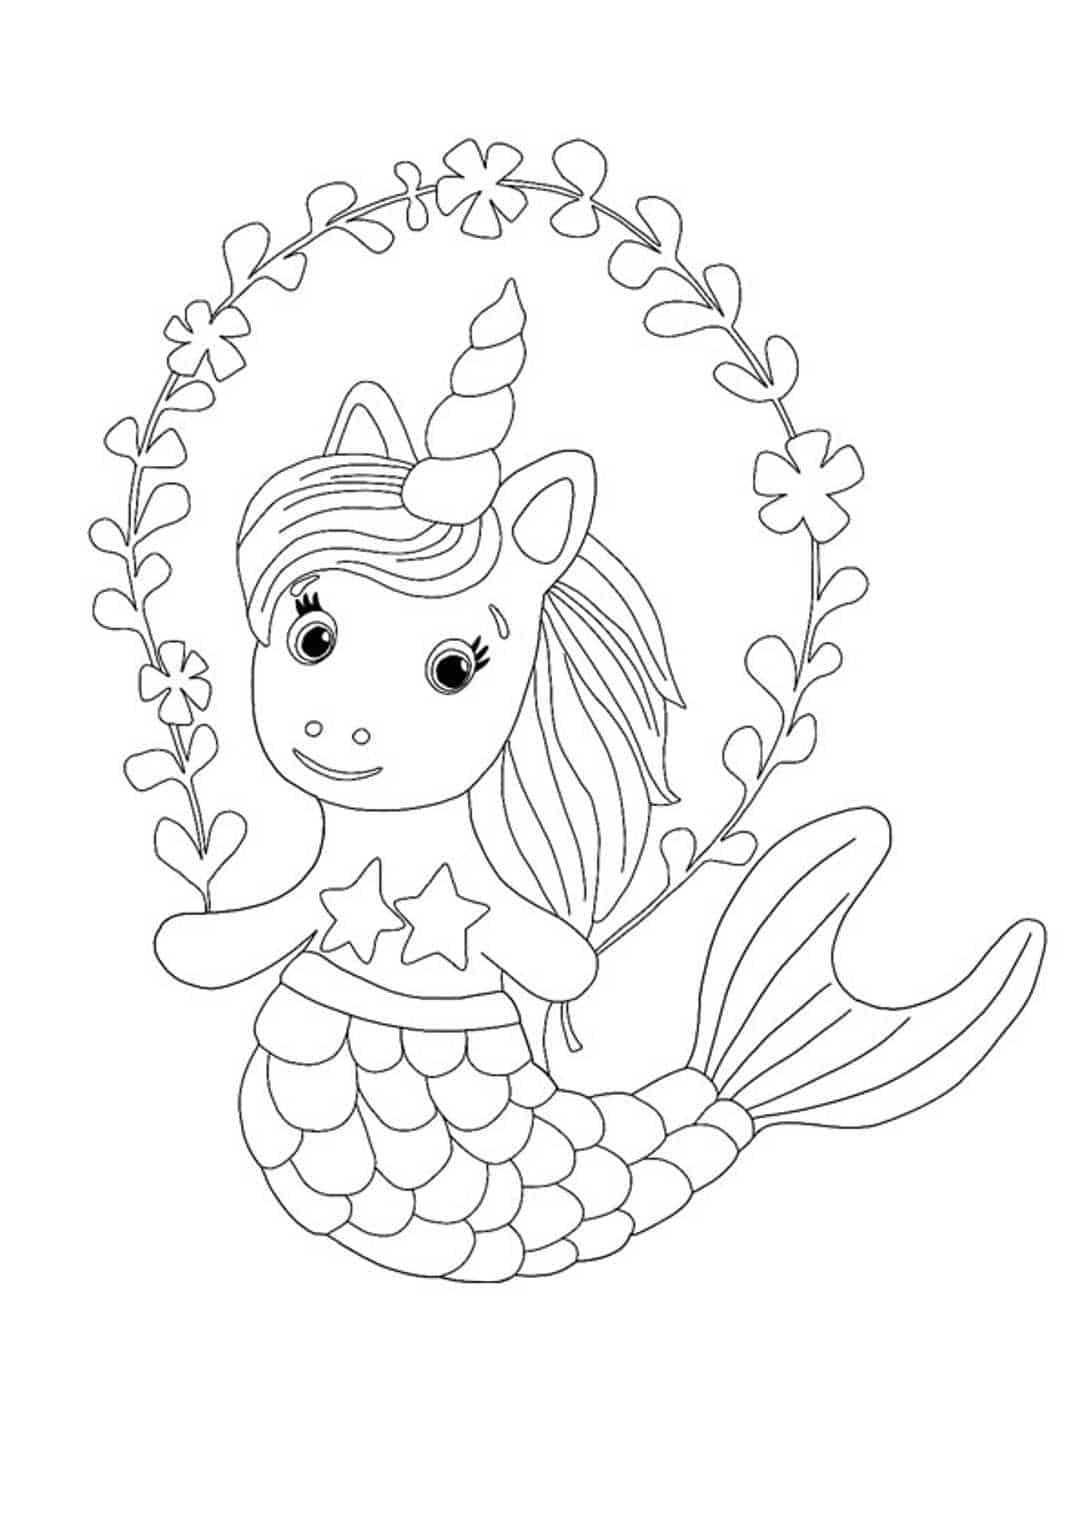 Little mermaid unicorn coloring page